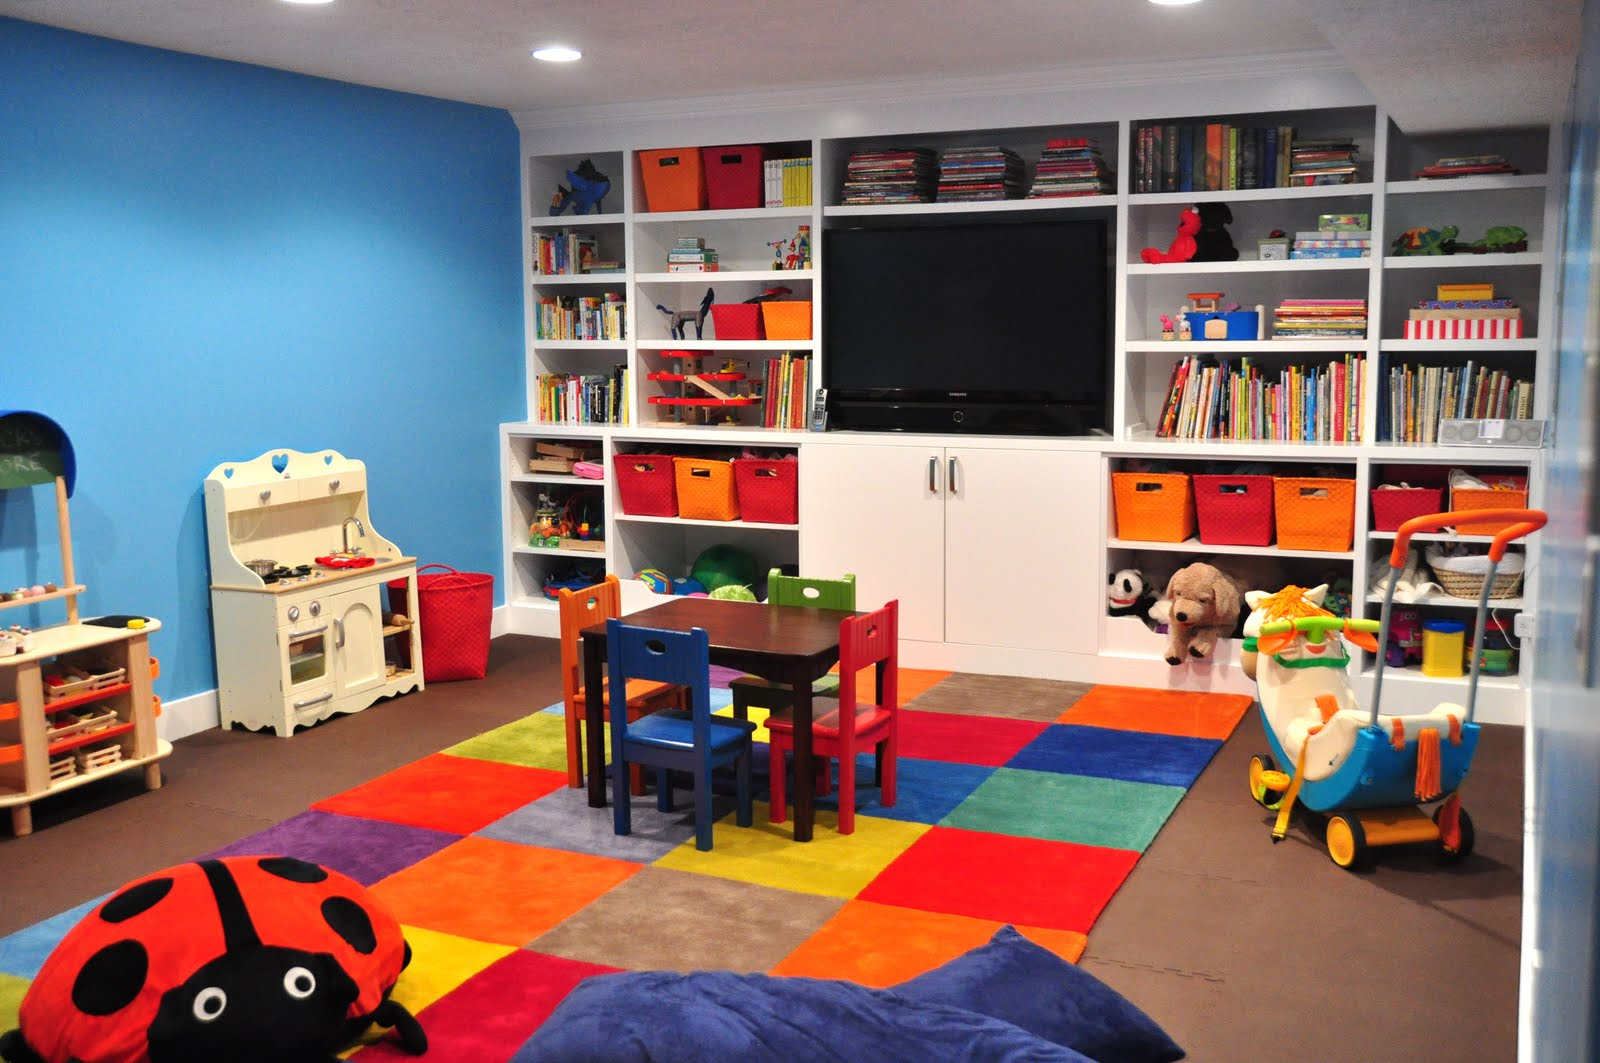 Basement Ideas For Kids playroom design ideas playroom decorating ideas playroom designs